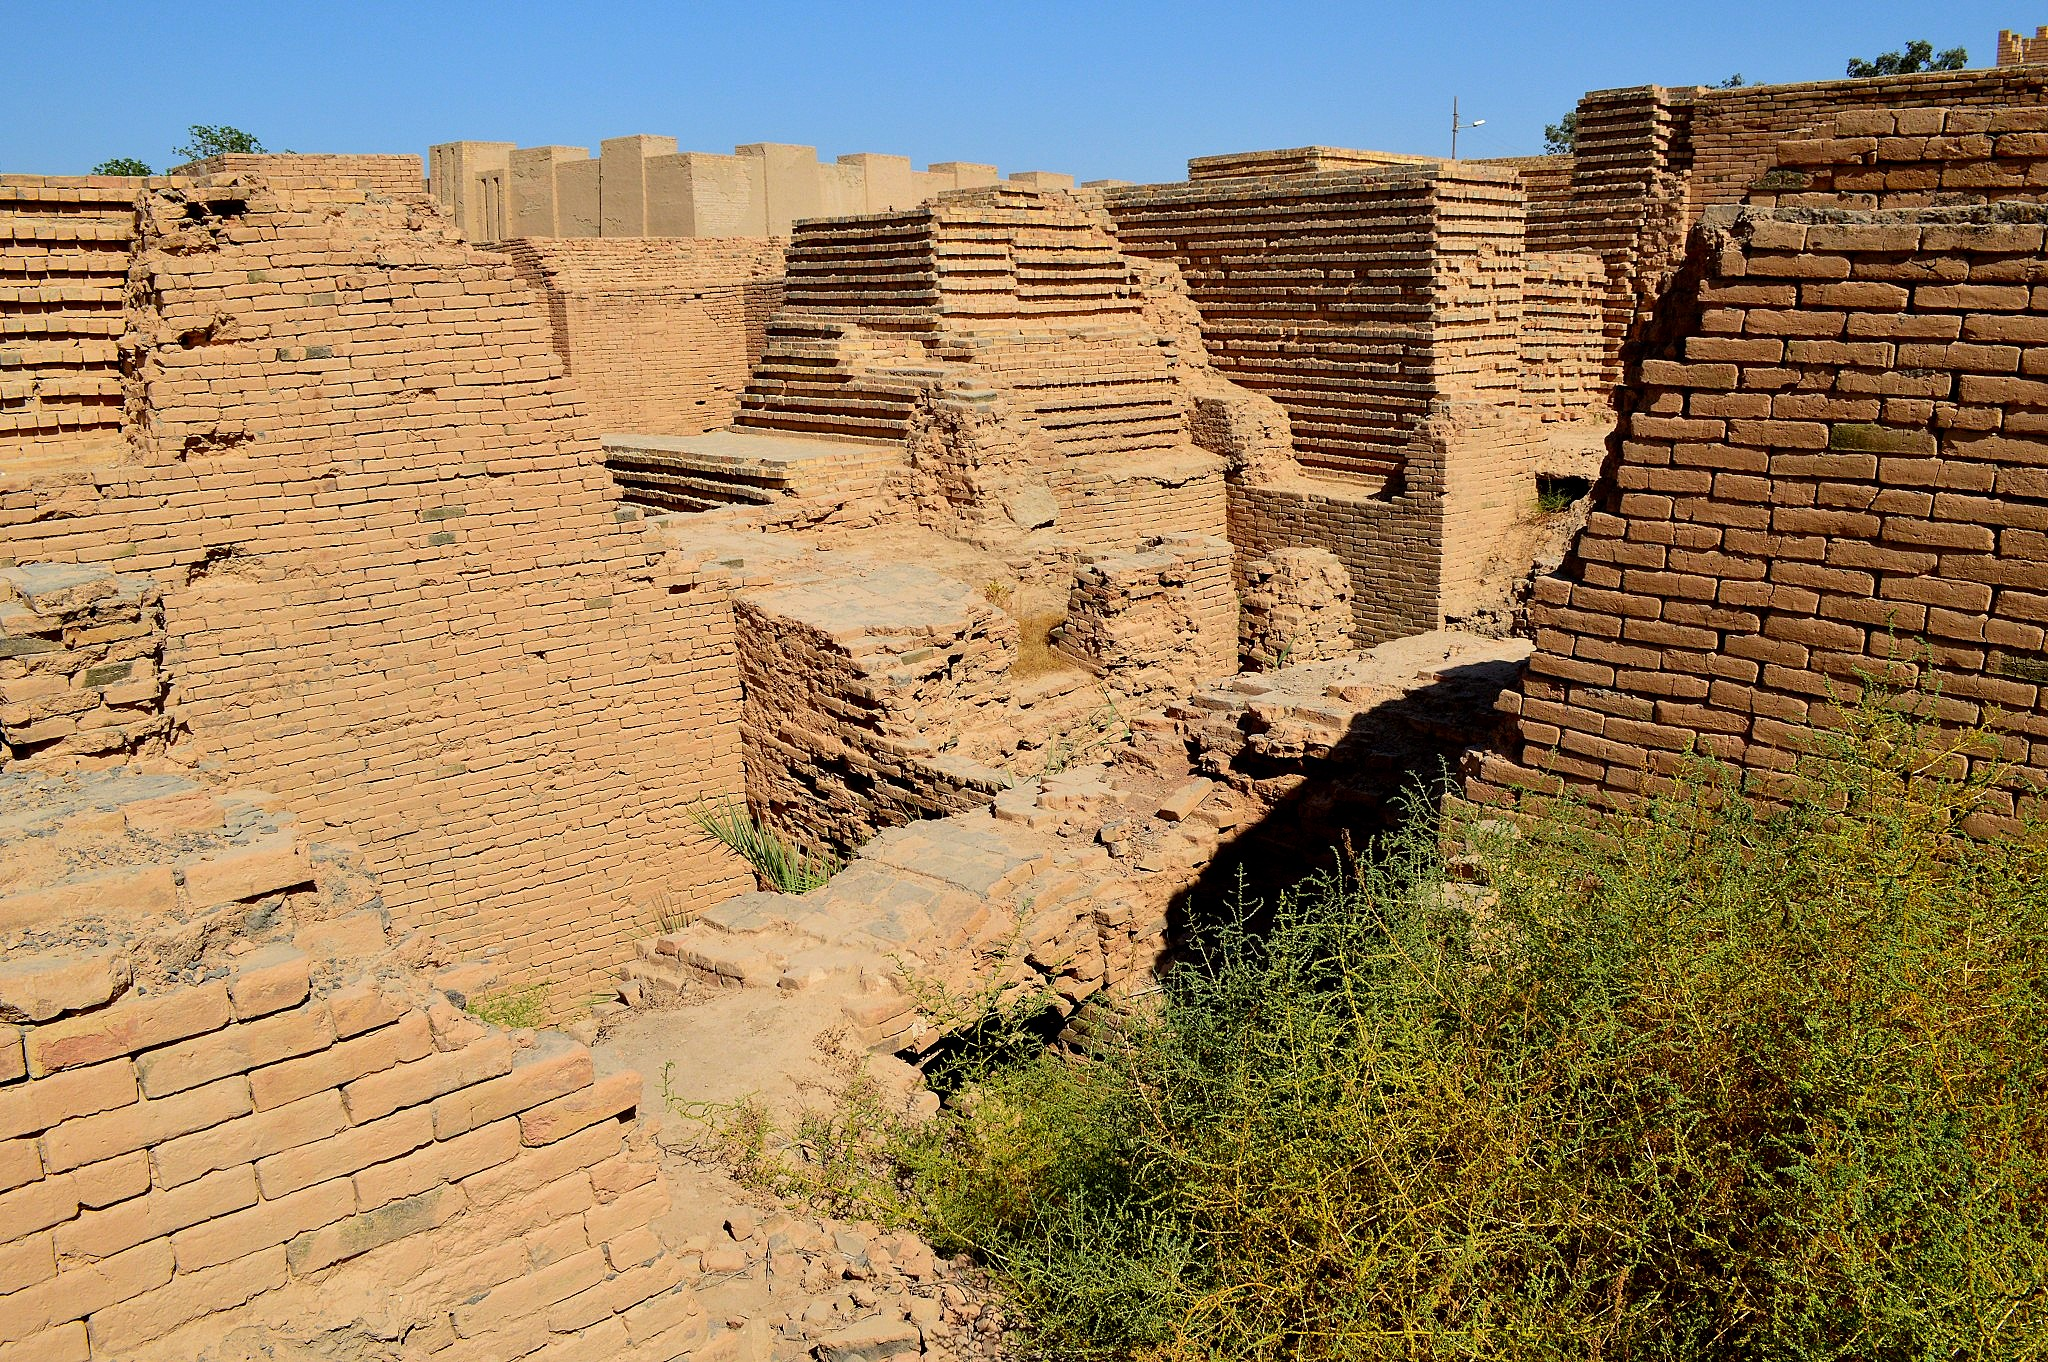 File:Ruins of the ancient city of Babylon, Iraq, 6th ...